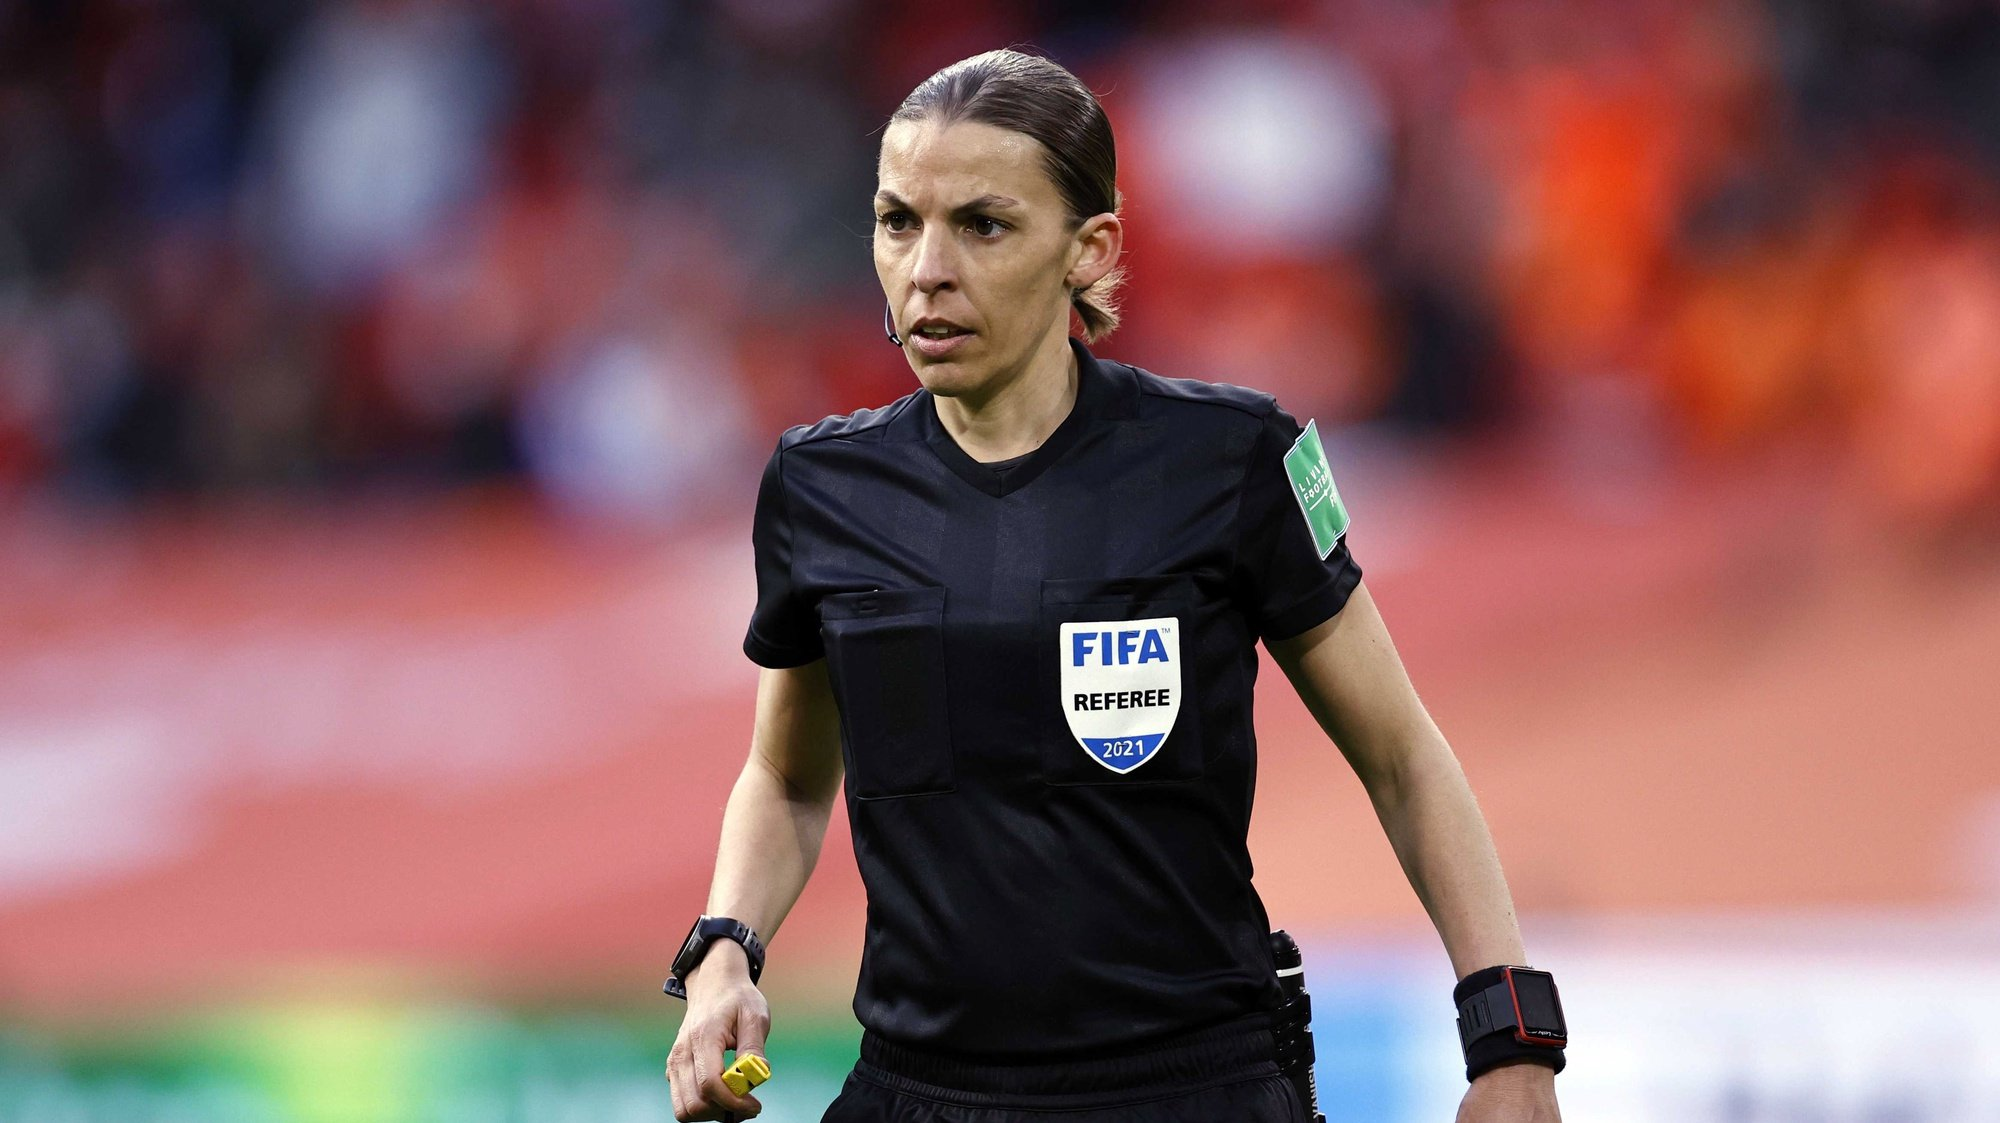 epa09101579 French referee Stephanie Frappart reacts during the FIFA World Cup 2022 qualifying match between the Netherlands and Latvia at Johan Cruijff Arena in Amsterdam, The Netherlands, 27 March 2021.  EPA/MAURICE VAN STEEN